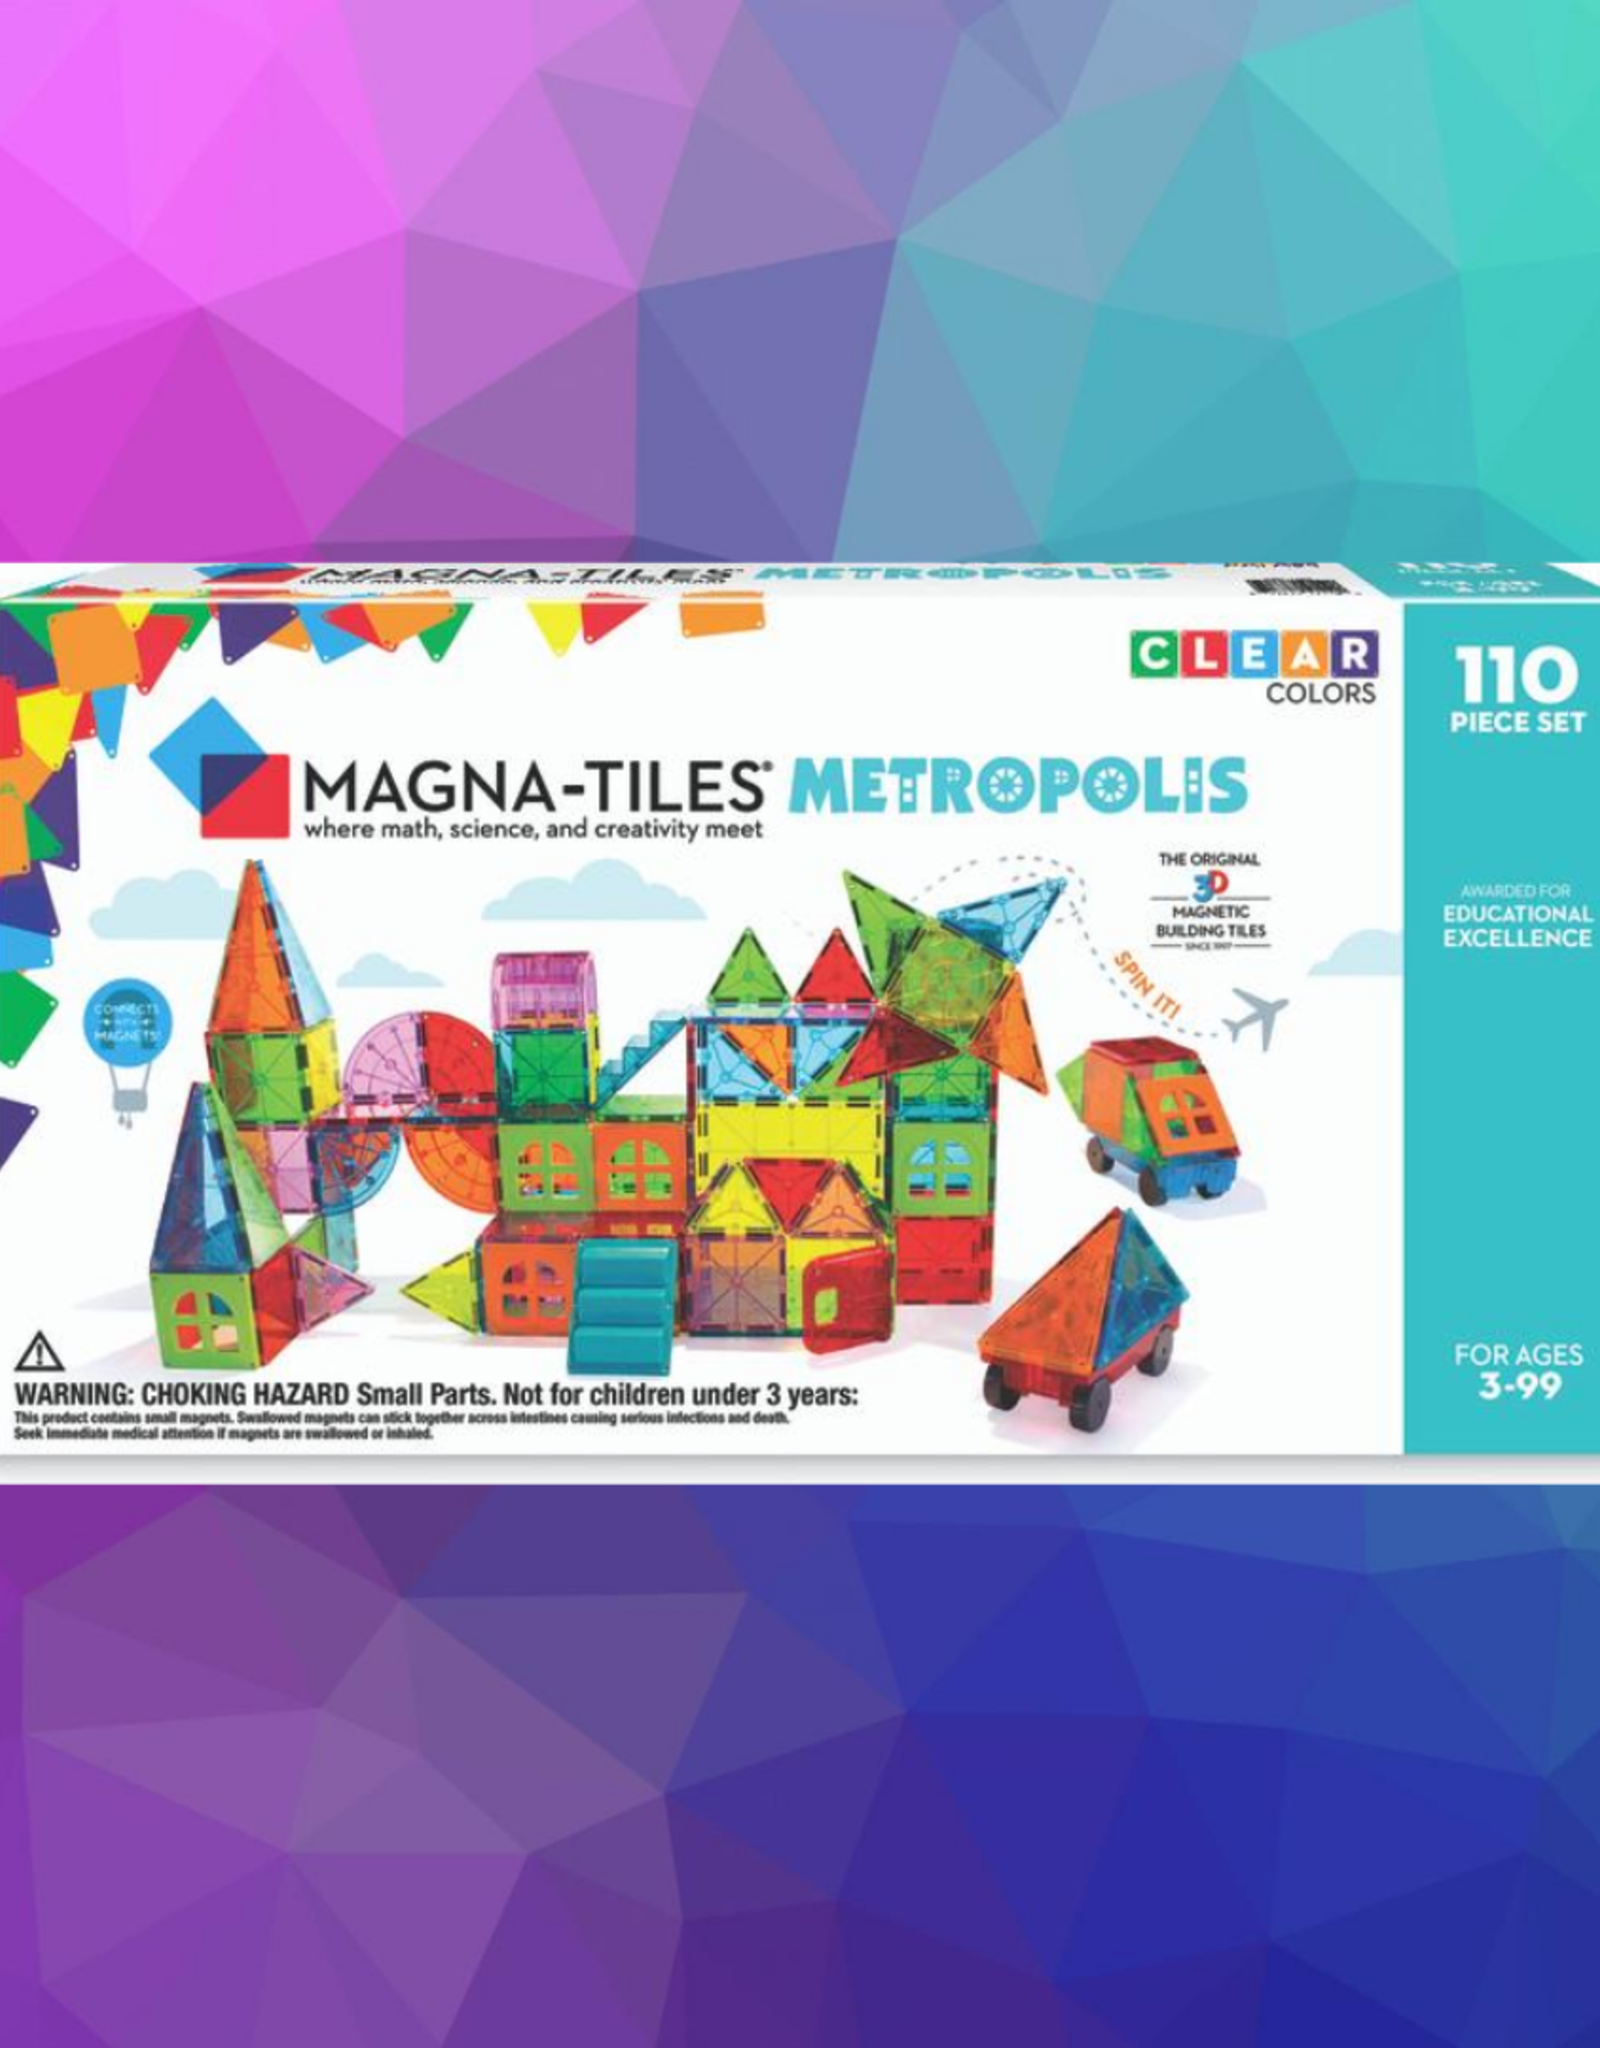 3D MAGNETIC BUILDING METROPOLIS MAGNA TILES 110 PC